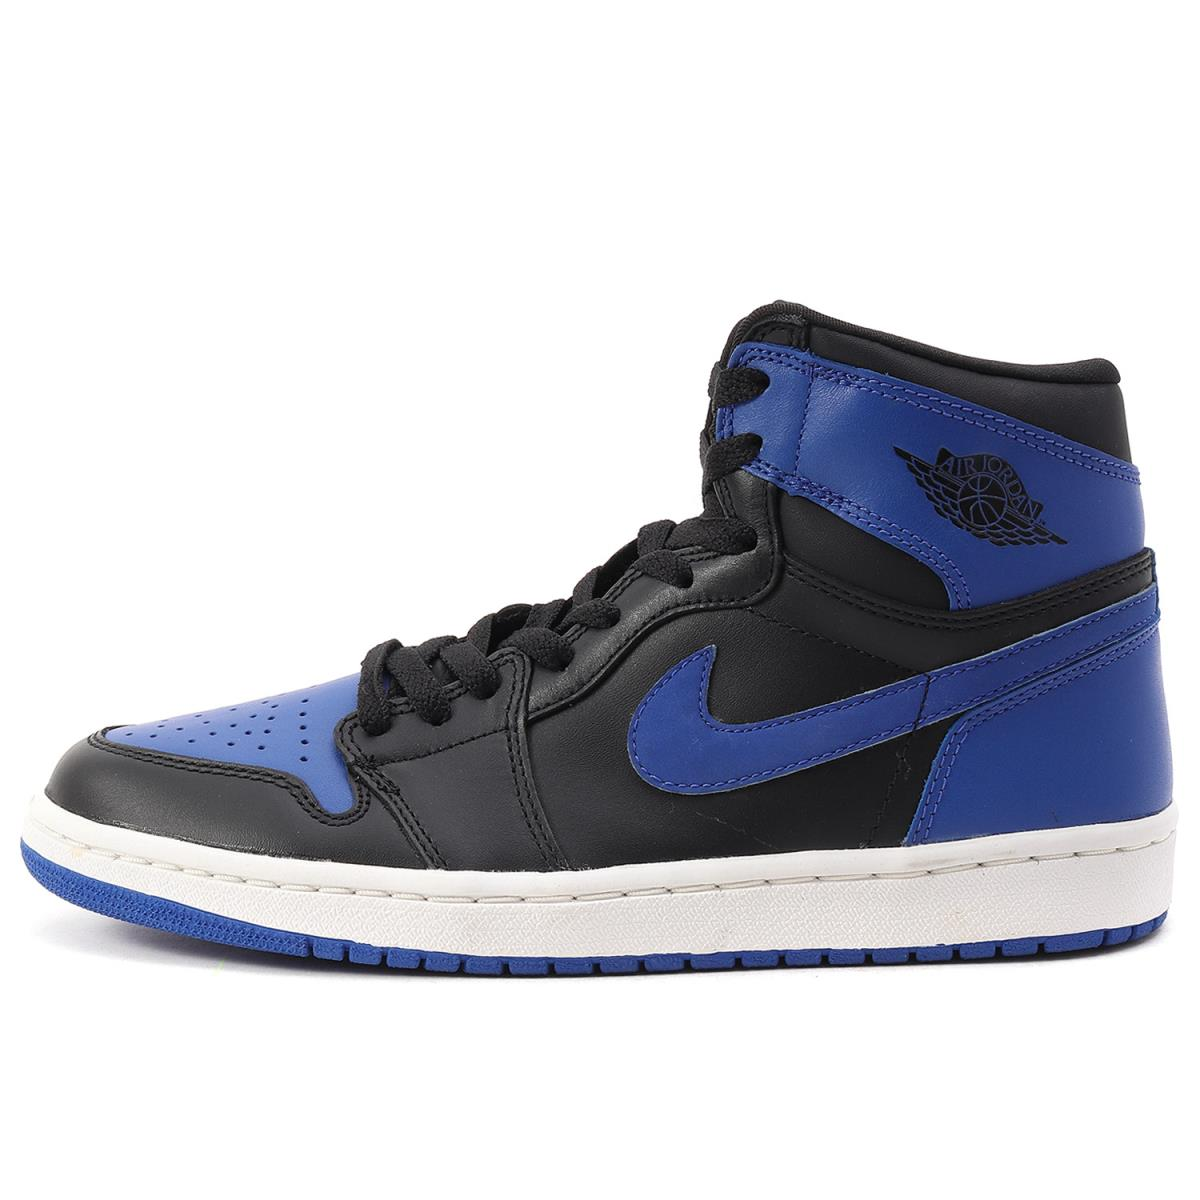 the latest b5ede 4aafa Black X royal US9(27cm) which there is 27,000 pairs-limited AIR JORDAN 1  RETRO ROYAL (136,066-041) box made in NIKE (Nike) 2001 in